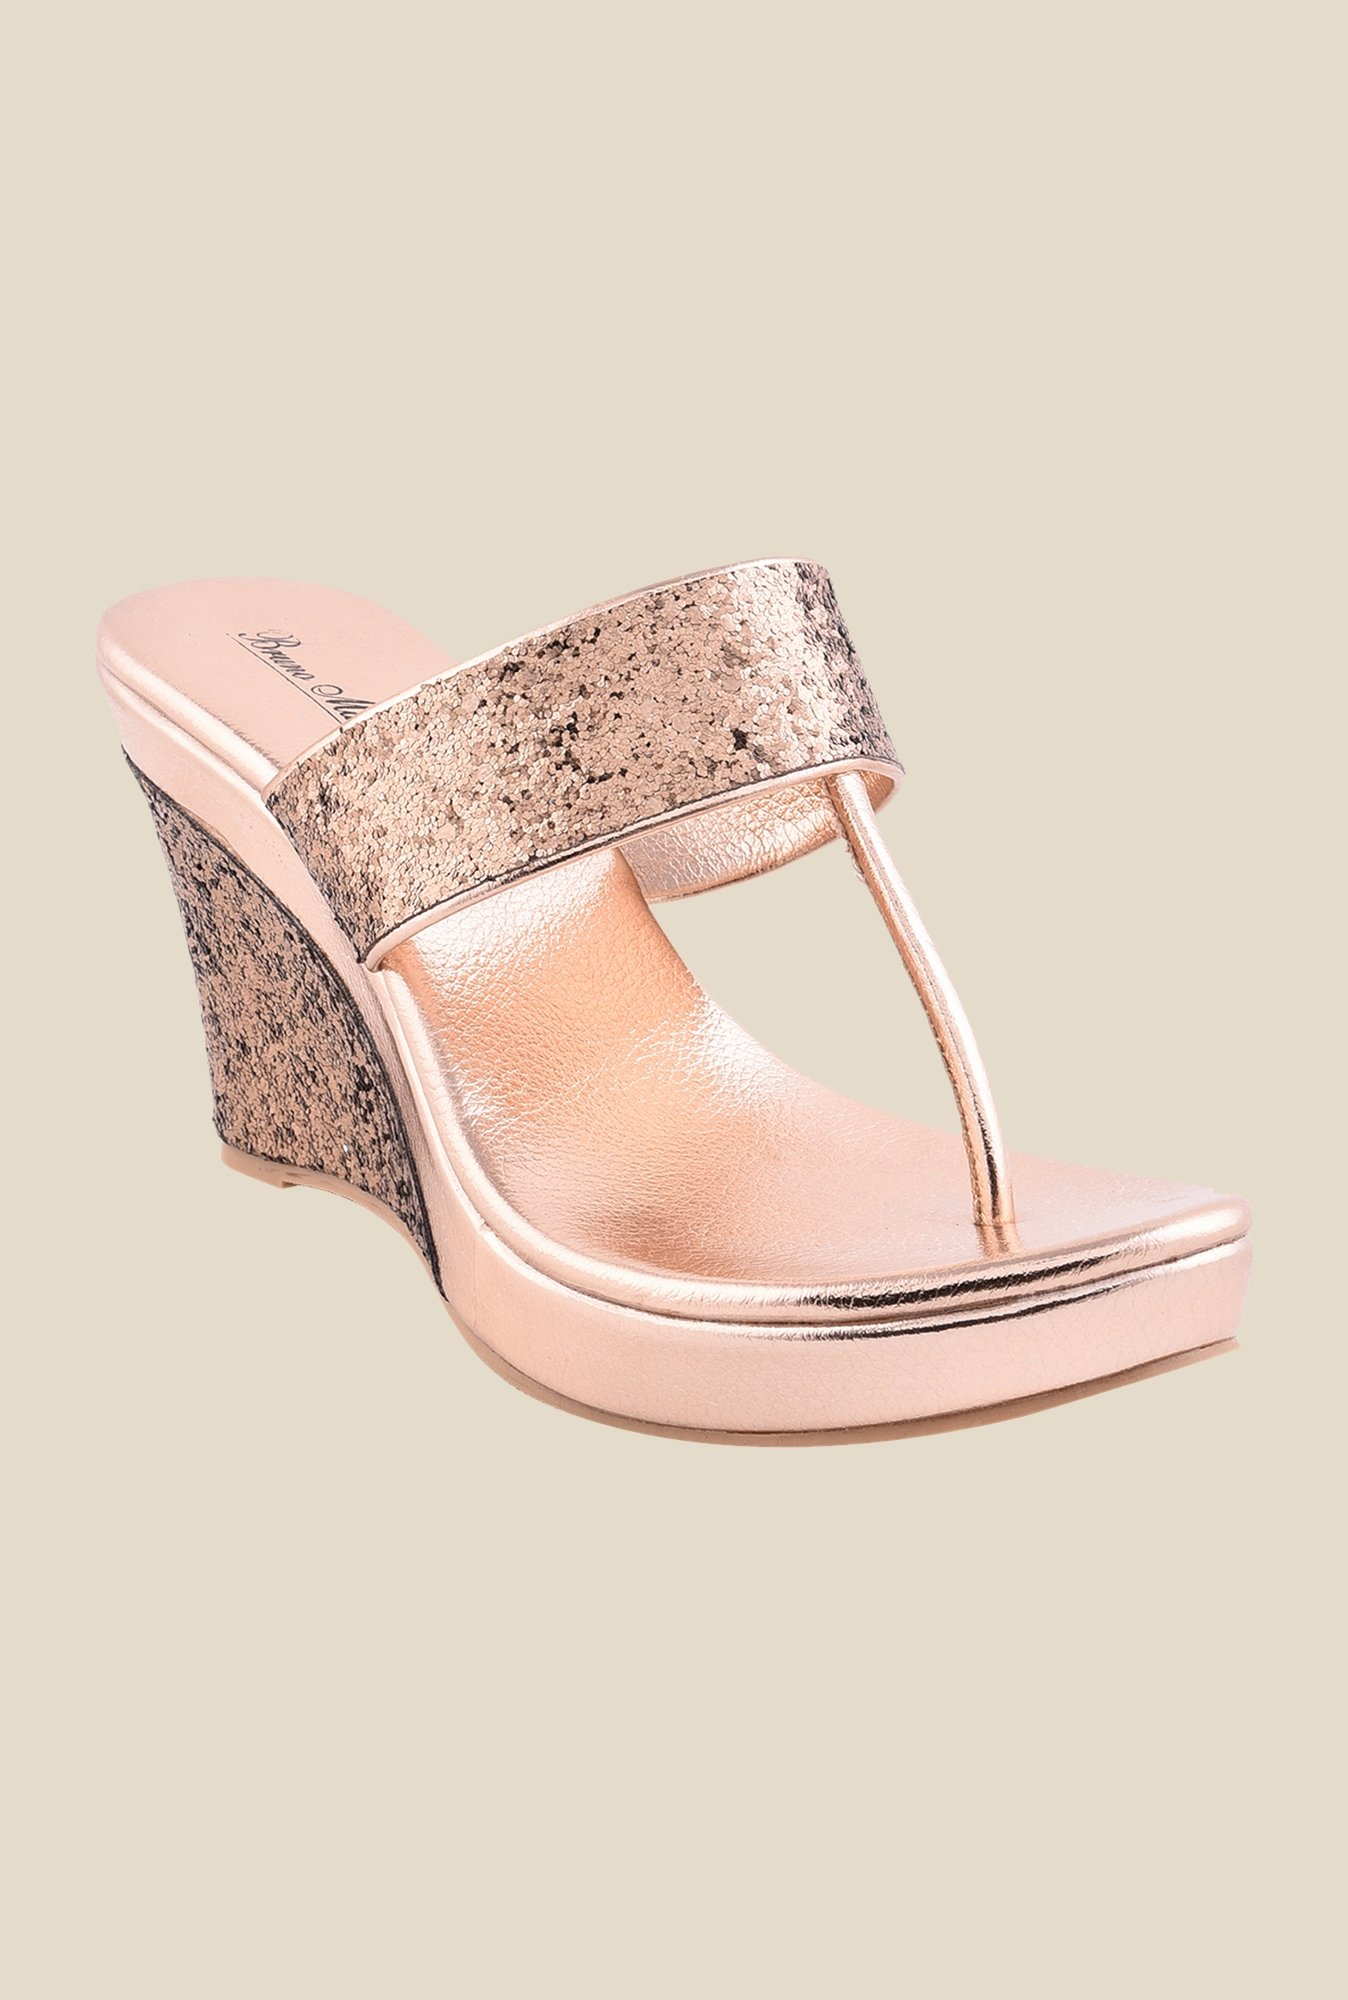 Bruno Manetti Copper T-Strap Wedges